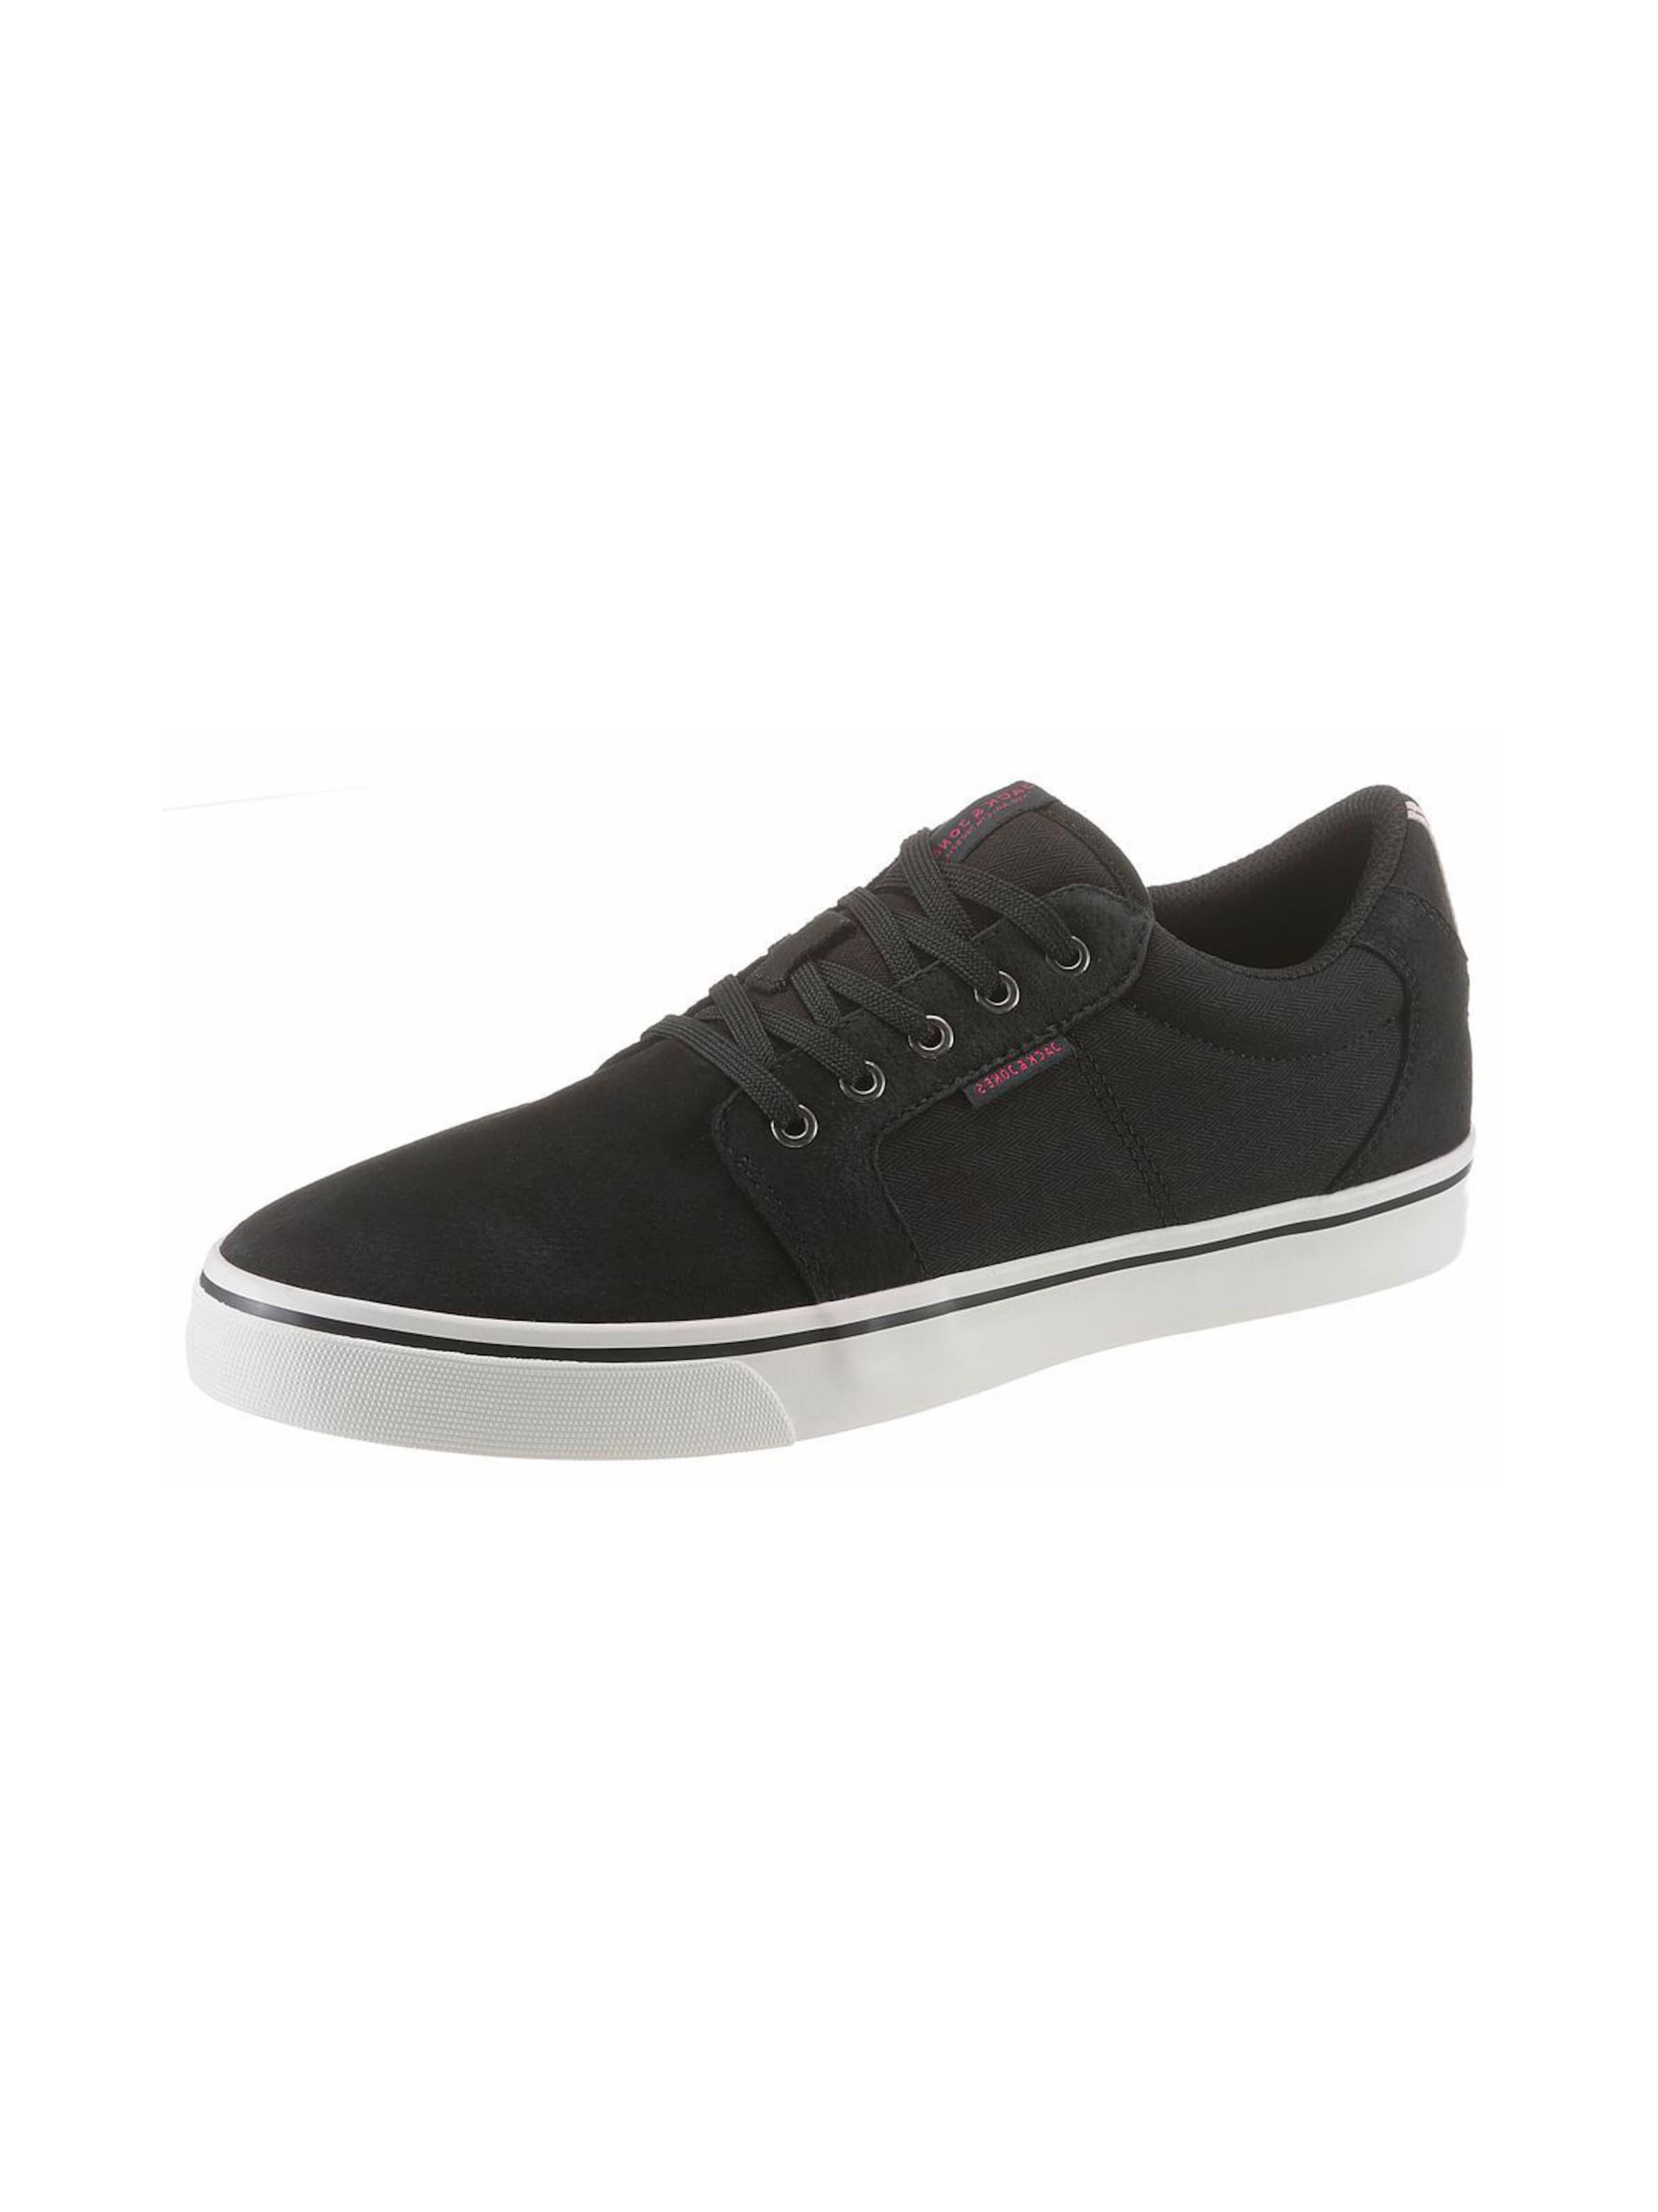 JACK & JONES Sneaker Jfw Dandy